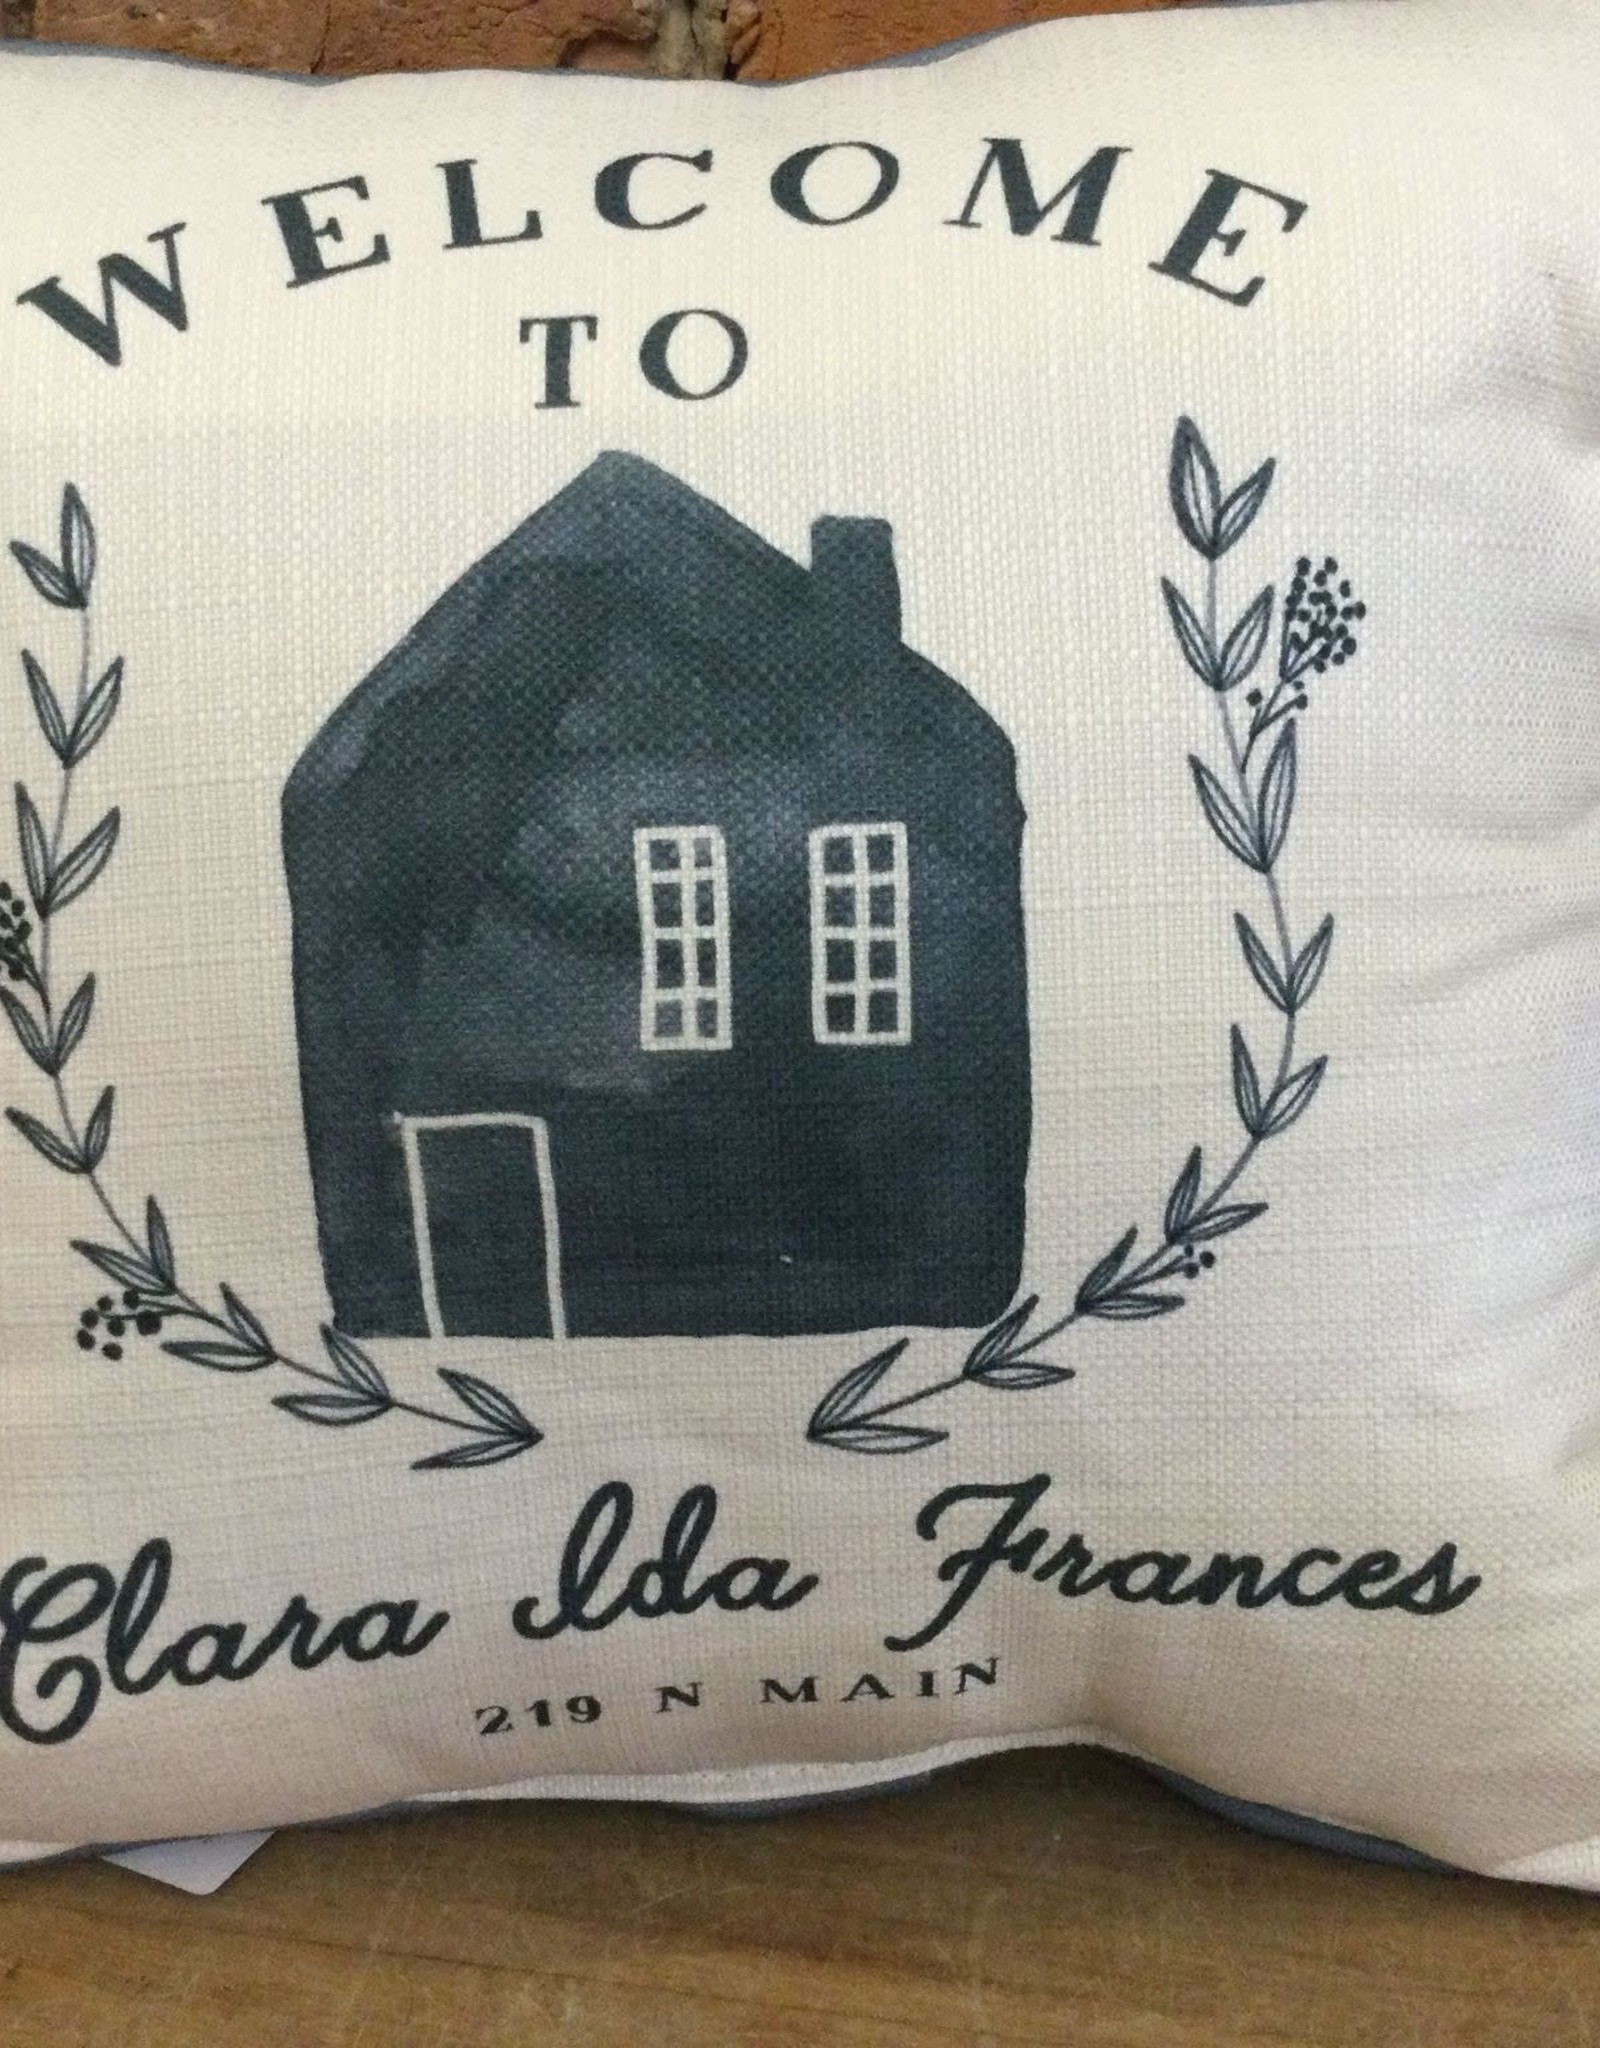 Welcome To Family Home Address-Clara Ida-Frances-219 N Main St